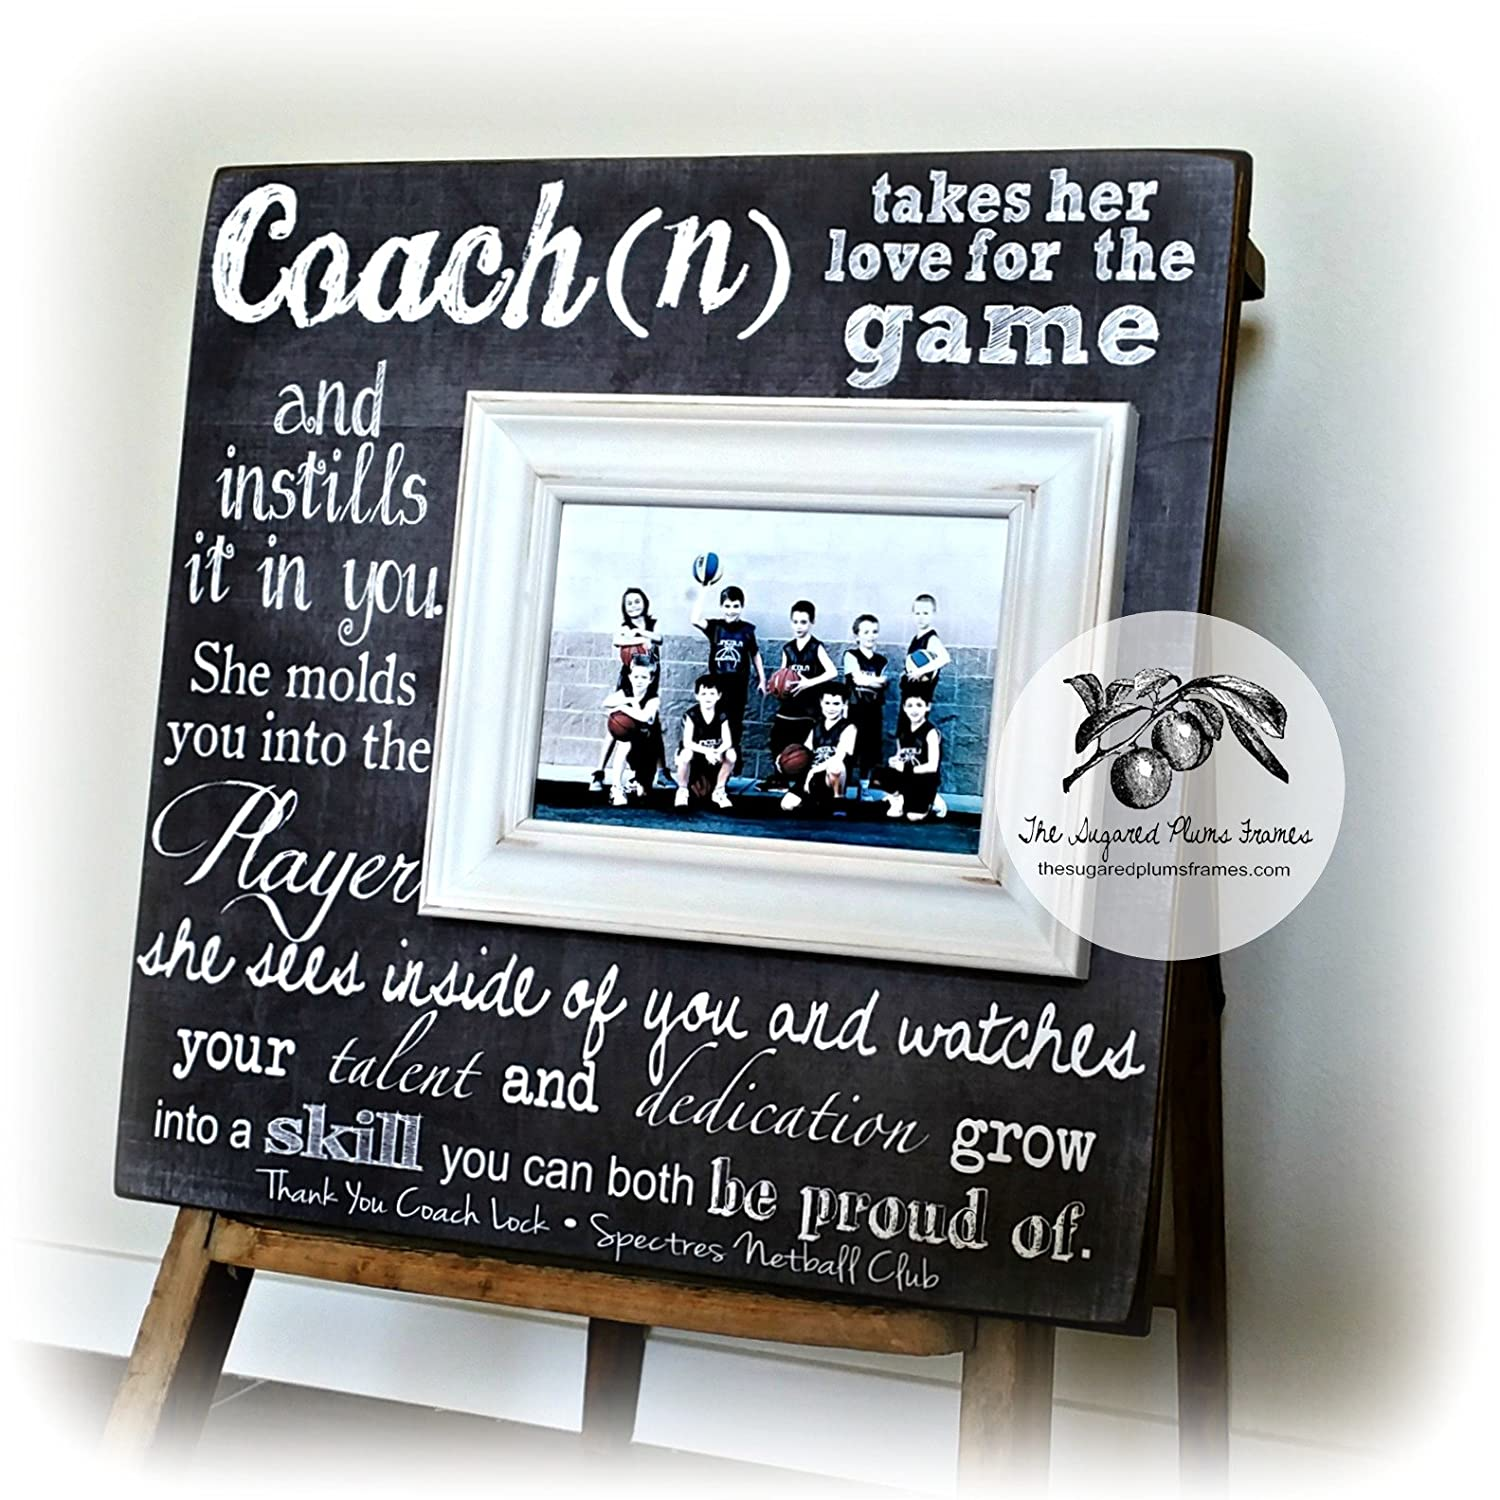 Amazon personalized coach thank you gift coach gift ideas amazon personalized coach thank you gift coach gift ideas basketball dance team soccer football gymnastics baseball end of season 16x16 jeuxipadfo Gallery